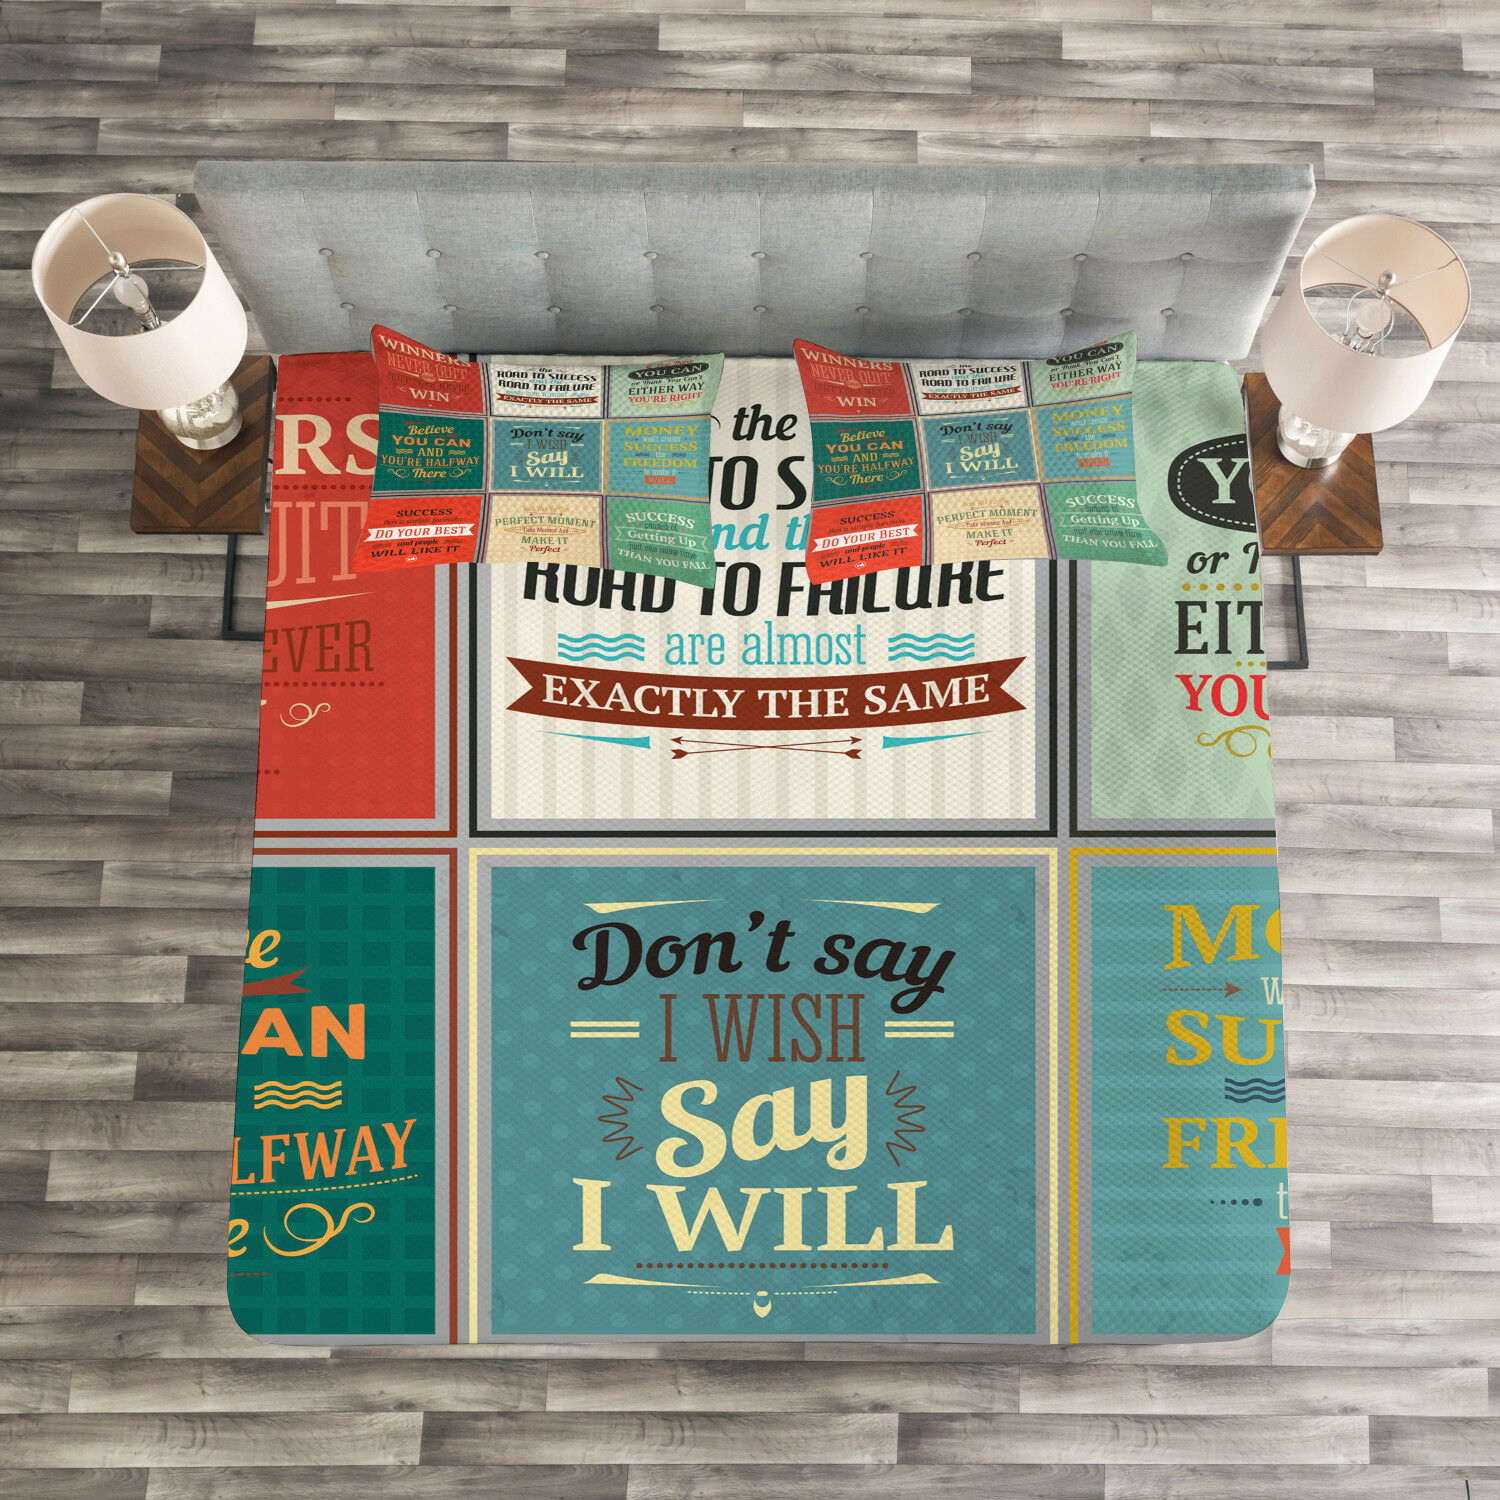 Quote Quilted Bedspread & Pillow Shams Set, Uplifting Wise Messages Print